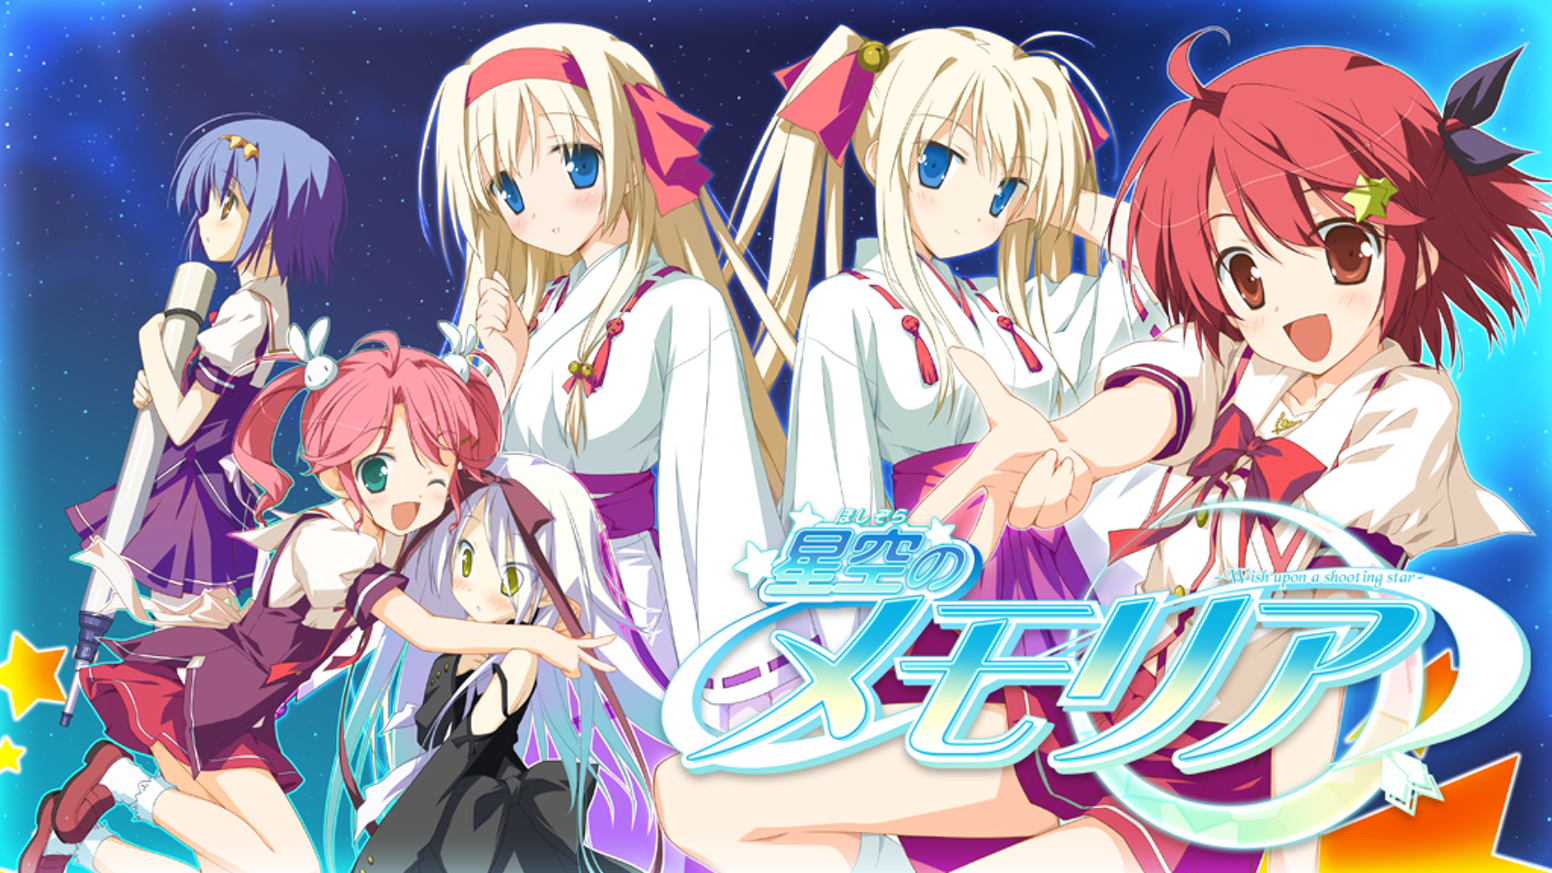 We are bringing Hoshizora no Memoria -Wish upon a Shooting Star- to English audiences!